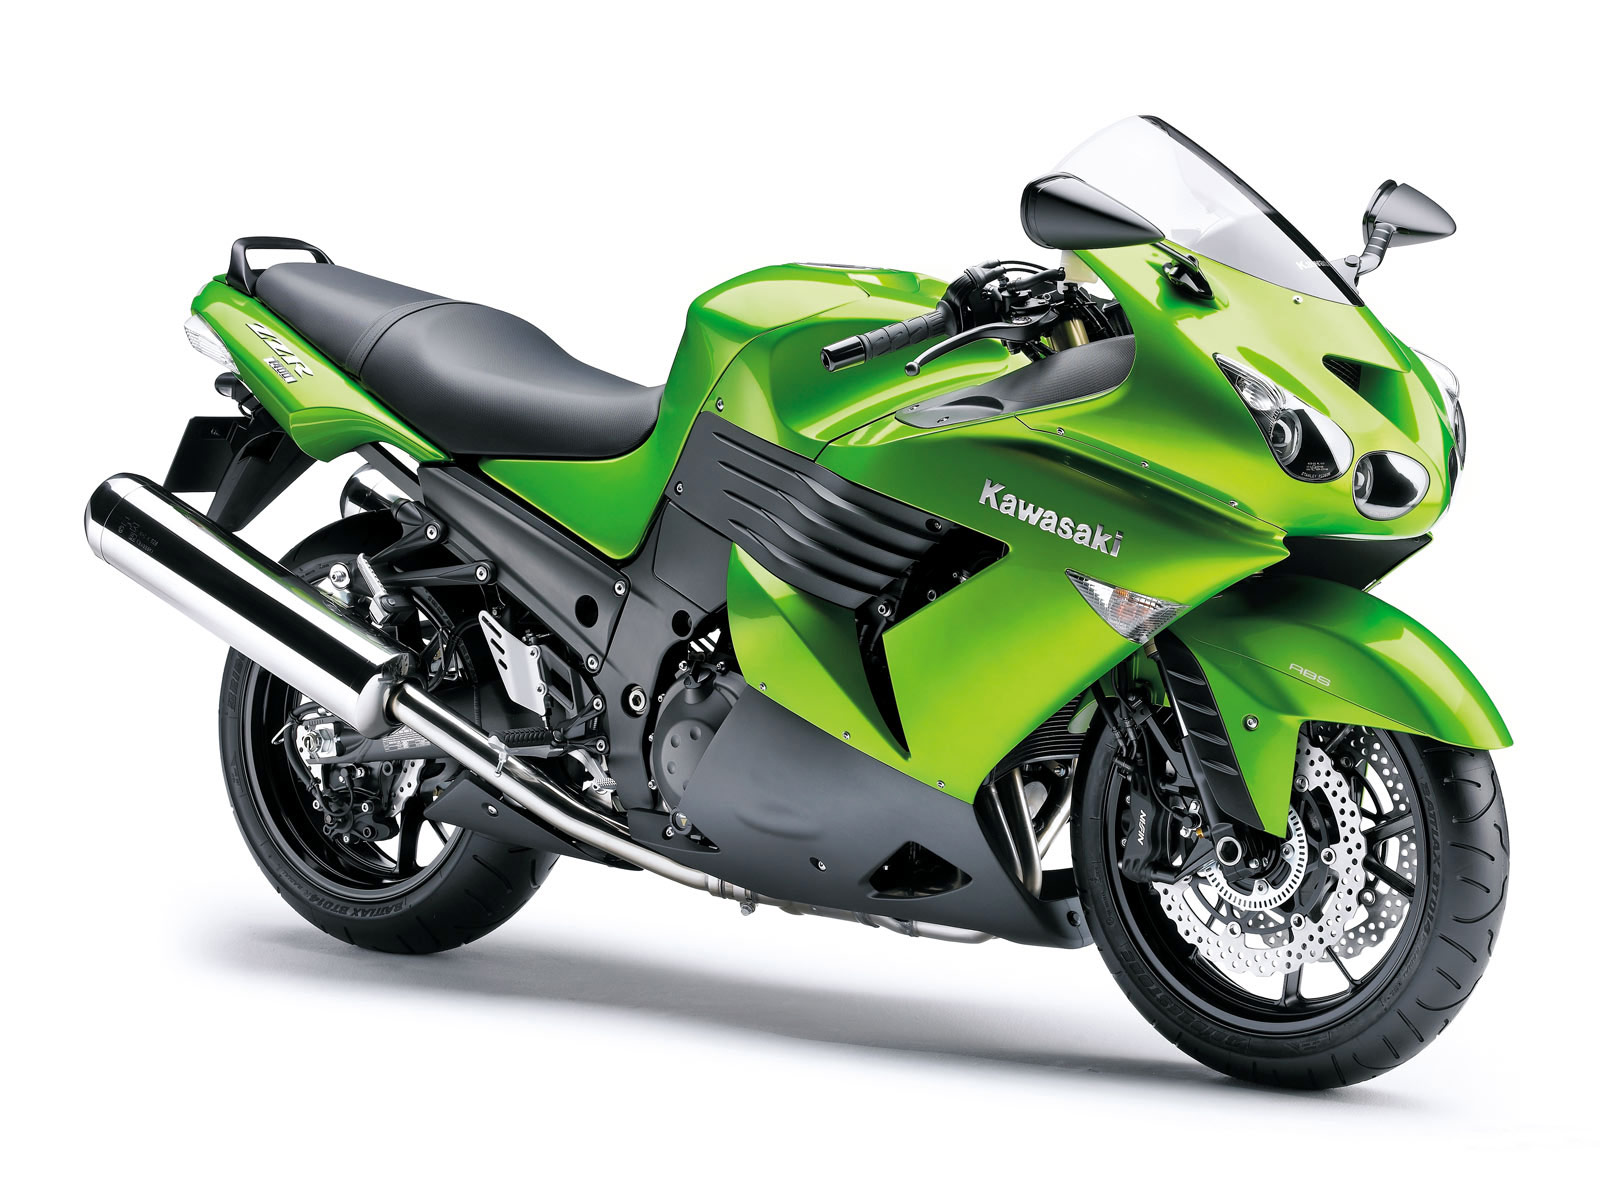 845 Black Kawasaki Ninja Wallpaper Wallpaper 3 furthermore 7 R1 M1 Replica Camel as well 15 Christmas Tree Coloring Pages For furthermore 2010 11 01 archive additionally Kawasaki Zx10r 2011 15 Undertail. on 2011 ninja zx 14